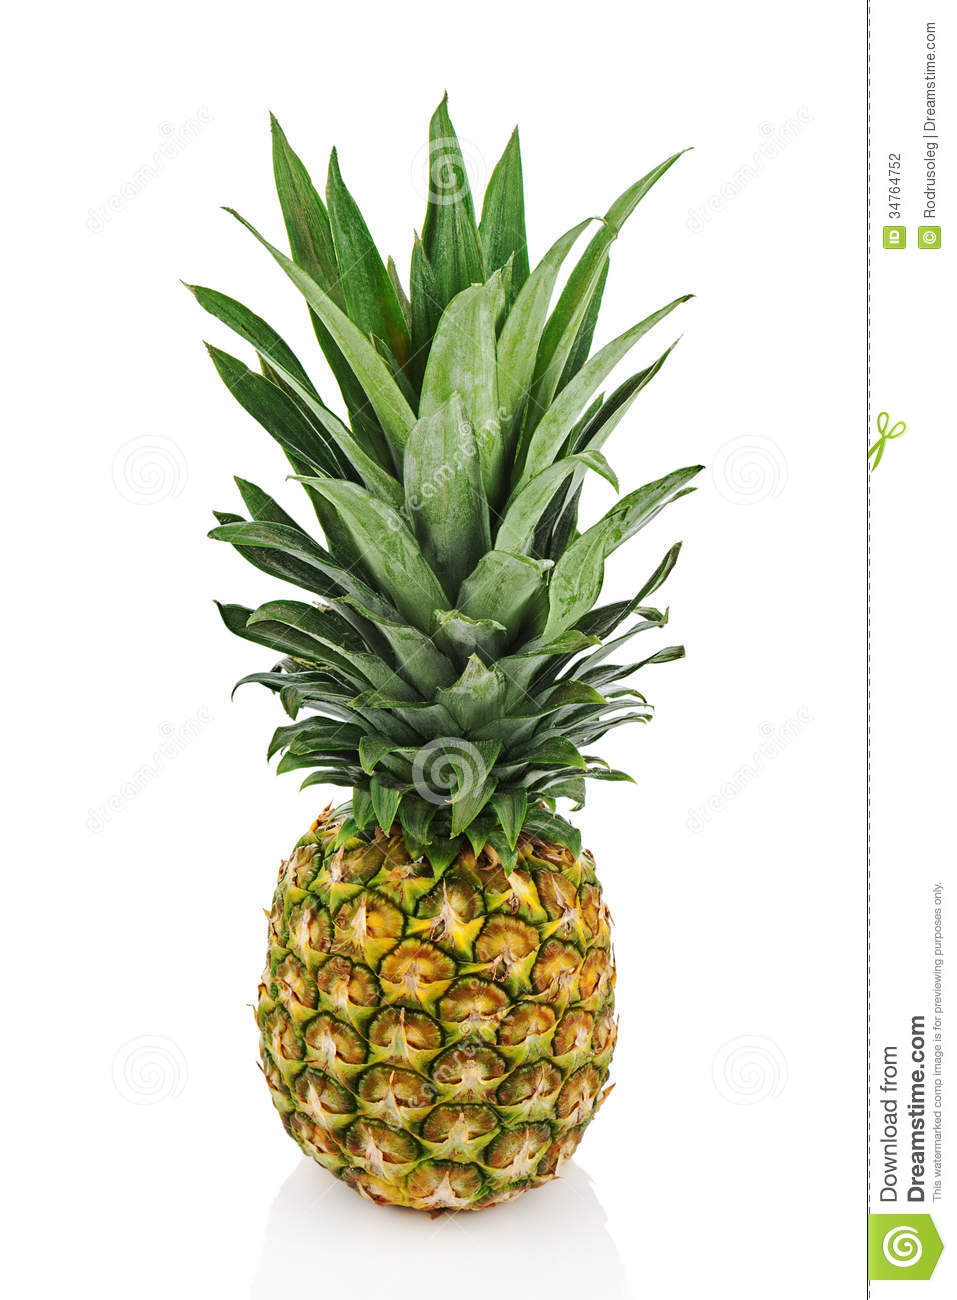 how to cut up a whole pineapple